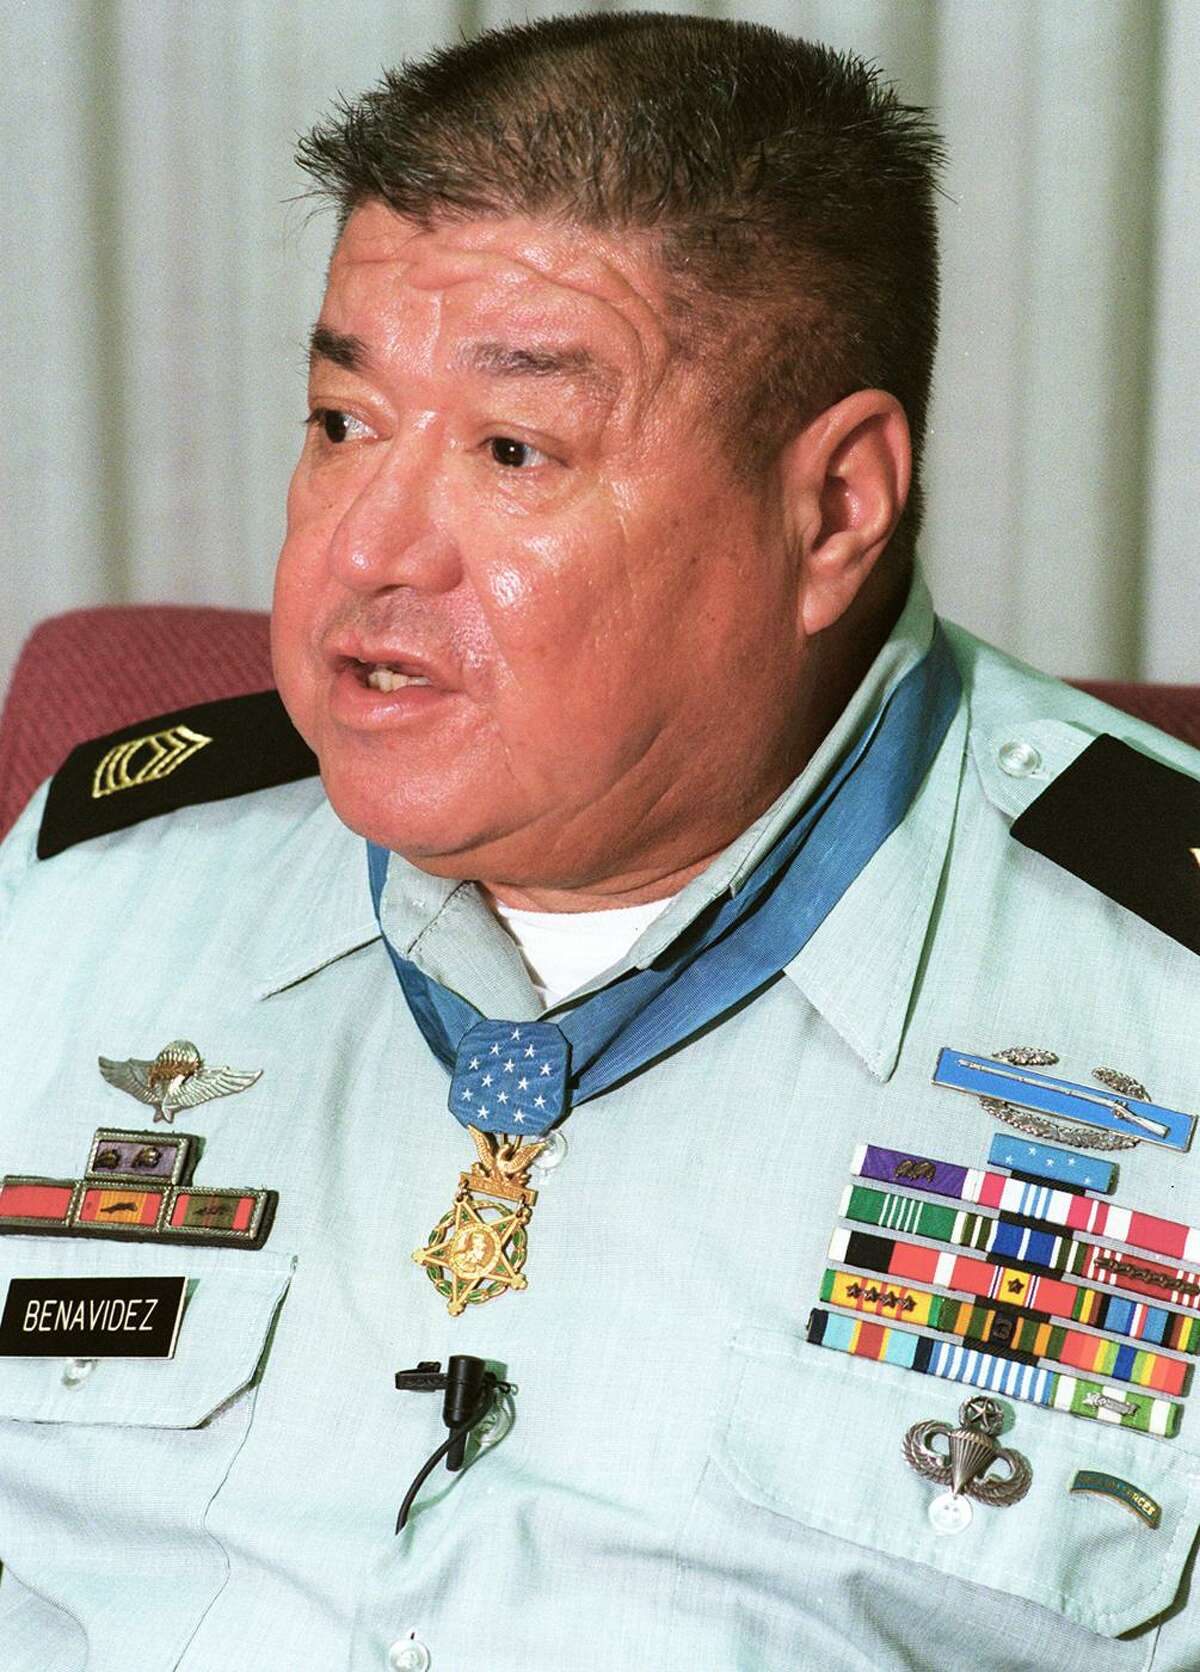 Roy P. Benavidez was awarded the Medal of Honor for his valor in Vietnam. It's past time to further honor him, and history, by changing the name of Fort Hood.